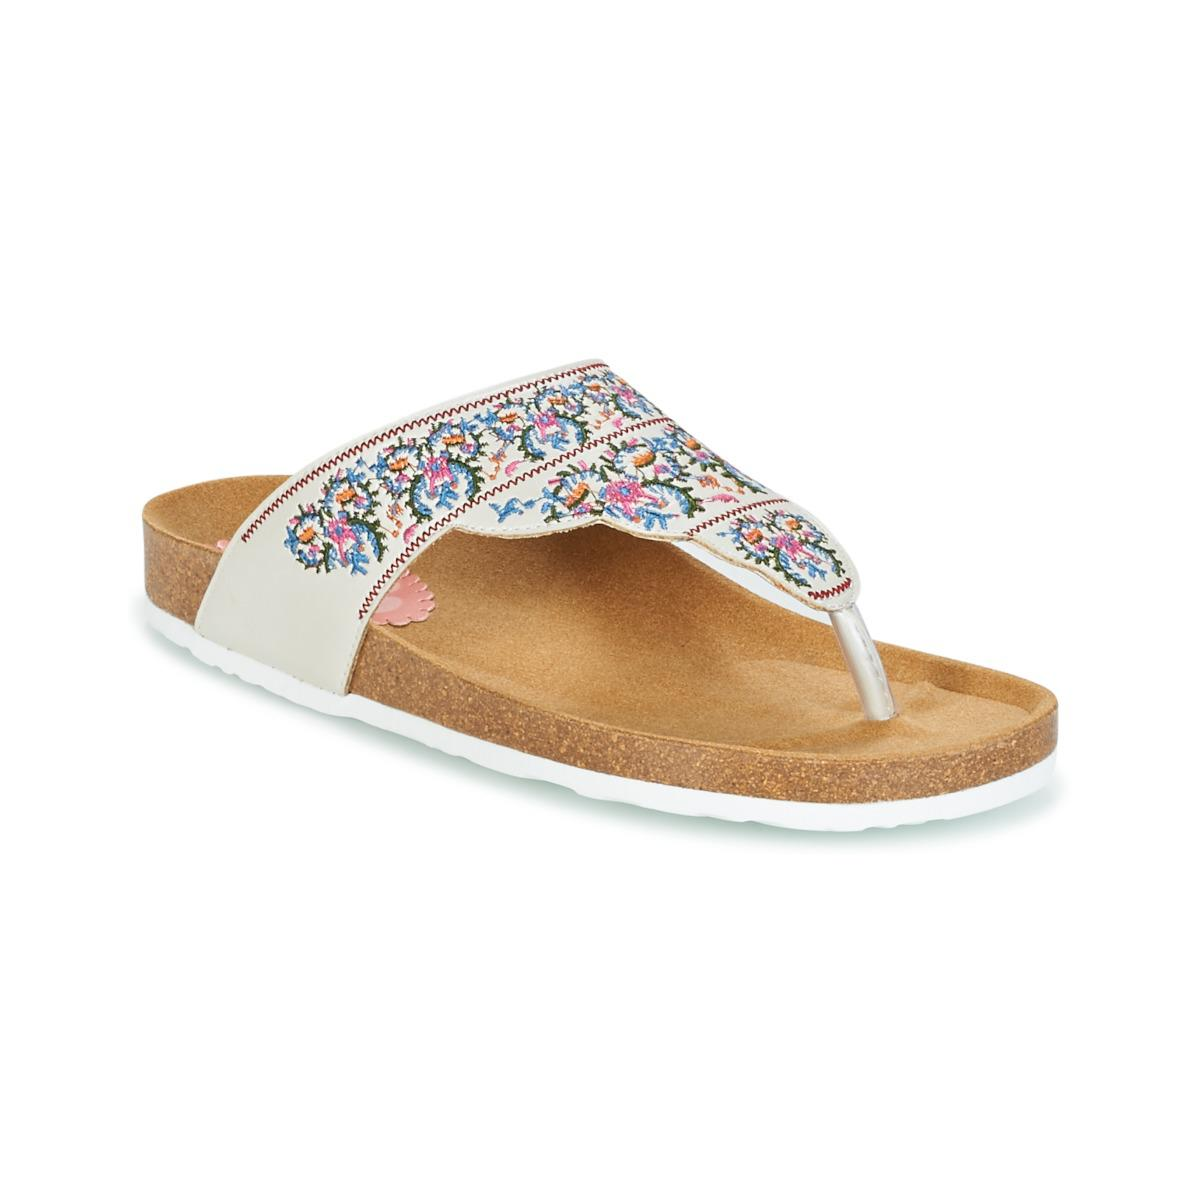 Desigual Tajmahal Flowers Womens Flip Flops Sandals Shoes In